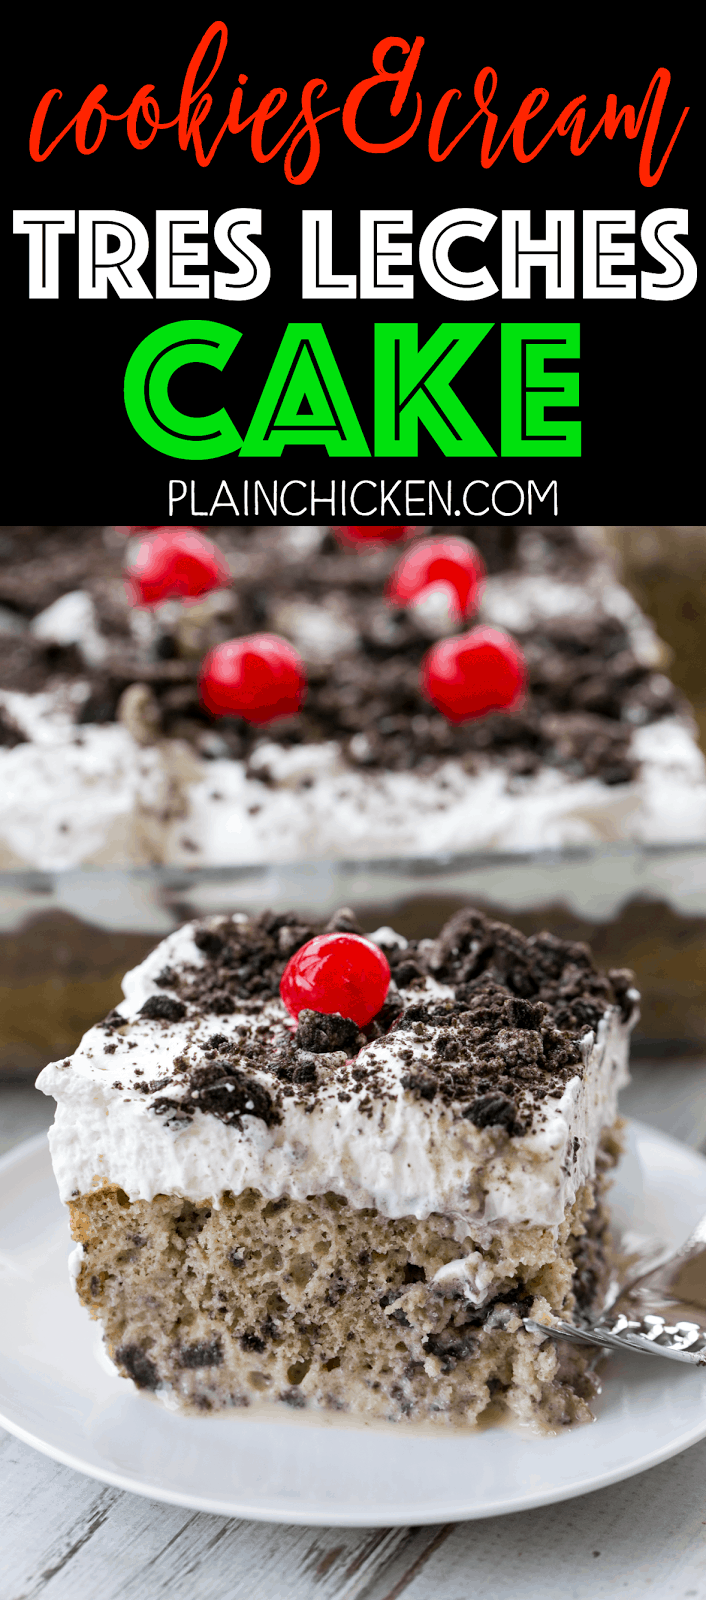 Cookies & Cream Tres Leches Cake - heaven in a pan! This cake is AMAZING! Seriously one of the best cakes I've ever made. Cake mix and Oreos, soaked in sweetened condensed milk, evaporated milk and half-and-half and topped with fresh whipped cream and crushed Oreos. SO good! My husband asked for this to be his birthday cake. Such a great dessert recipe! Love how easy this dessert is to make!!